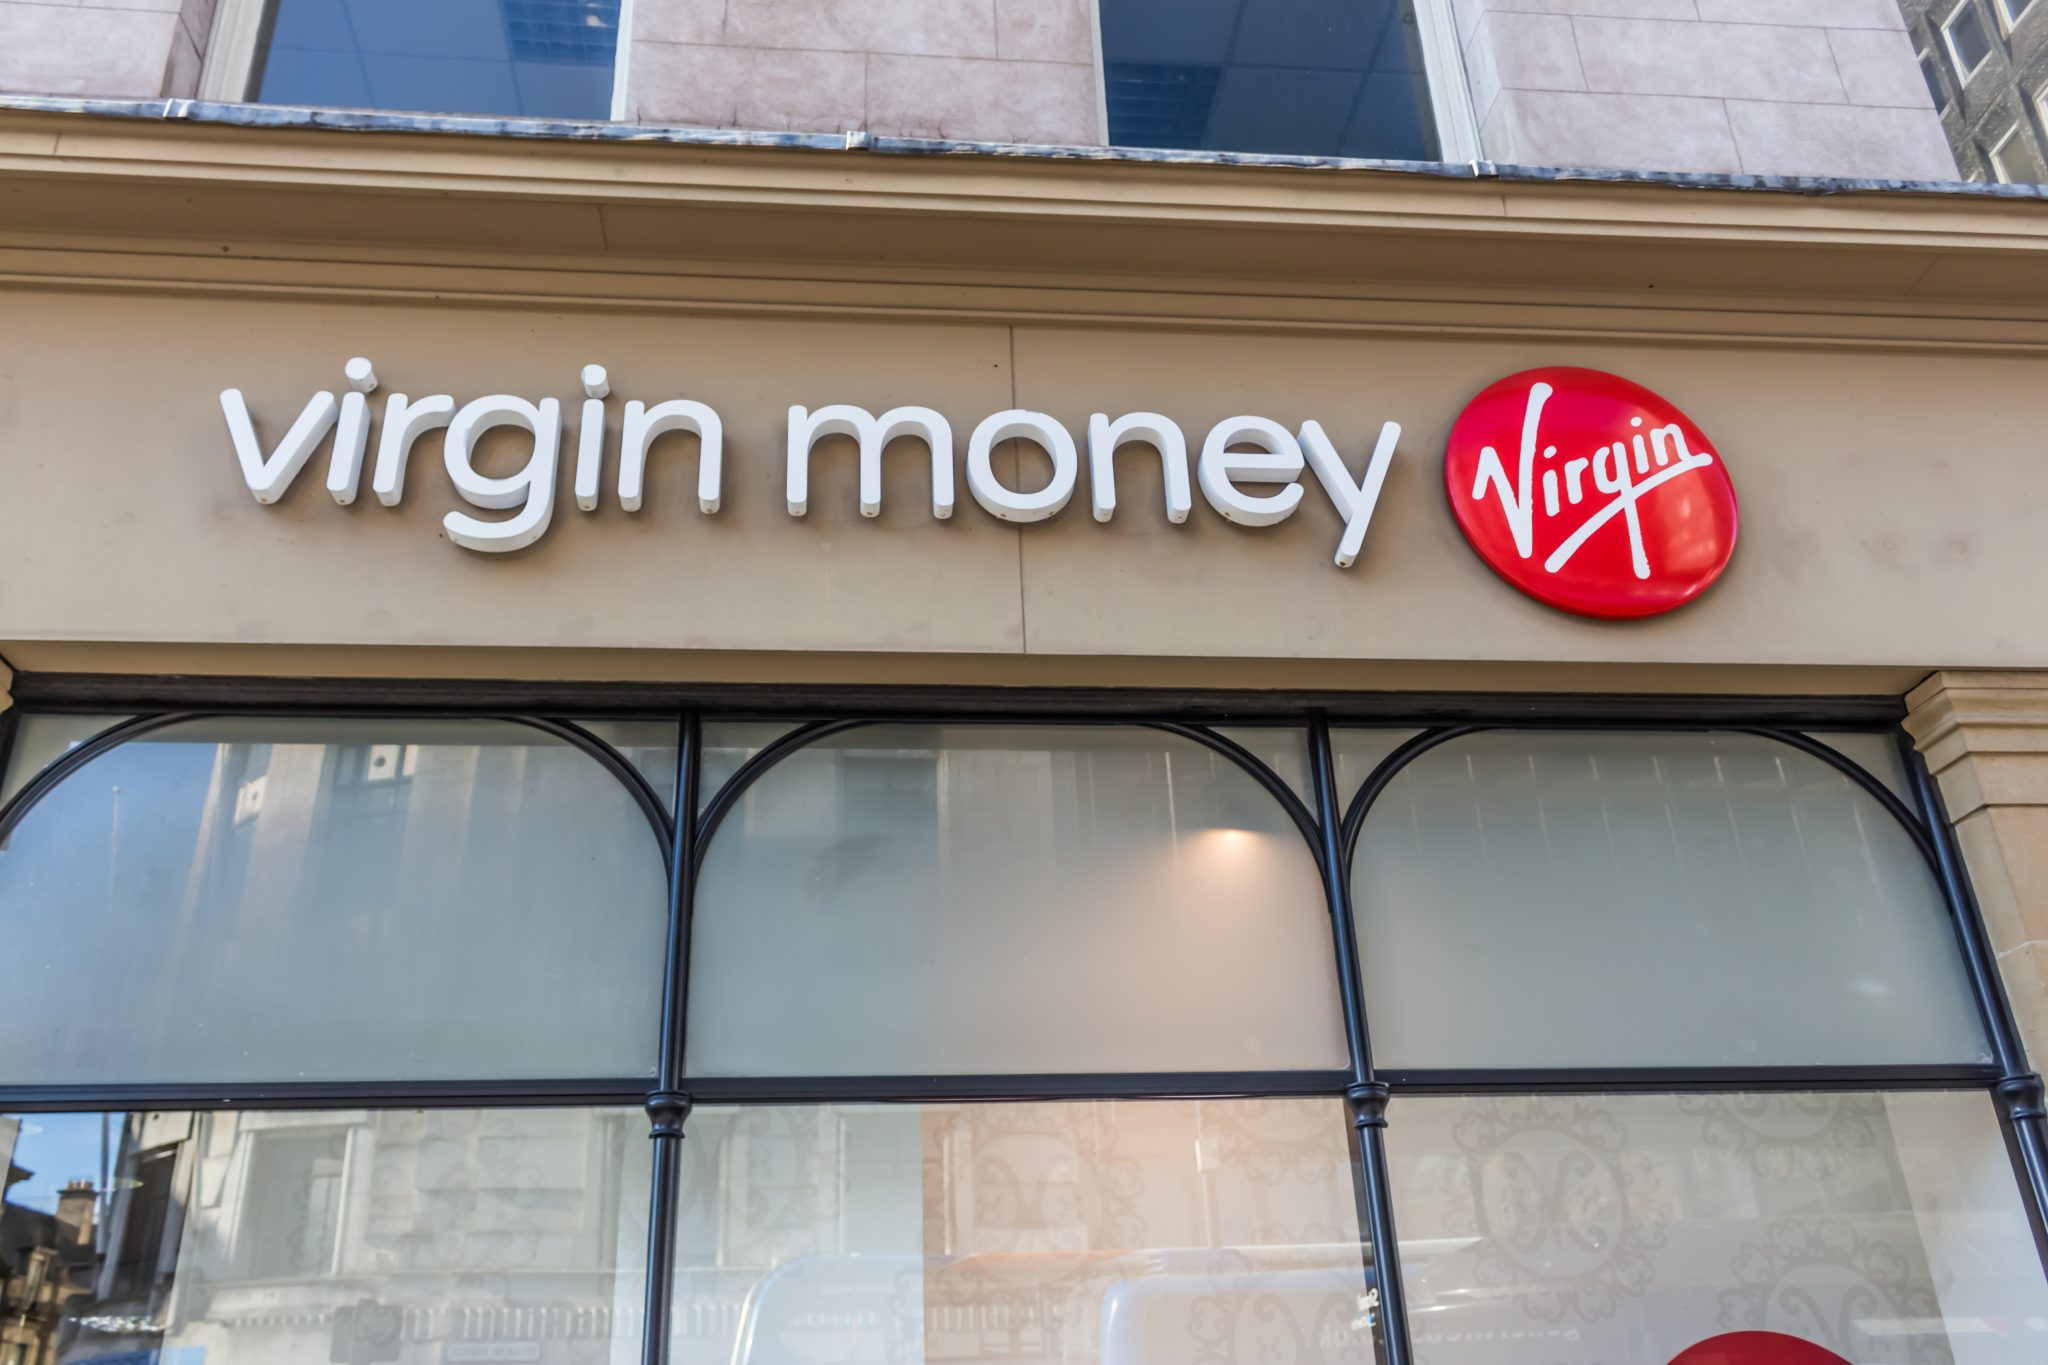 Virgin credit card PPI